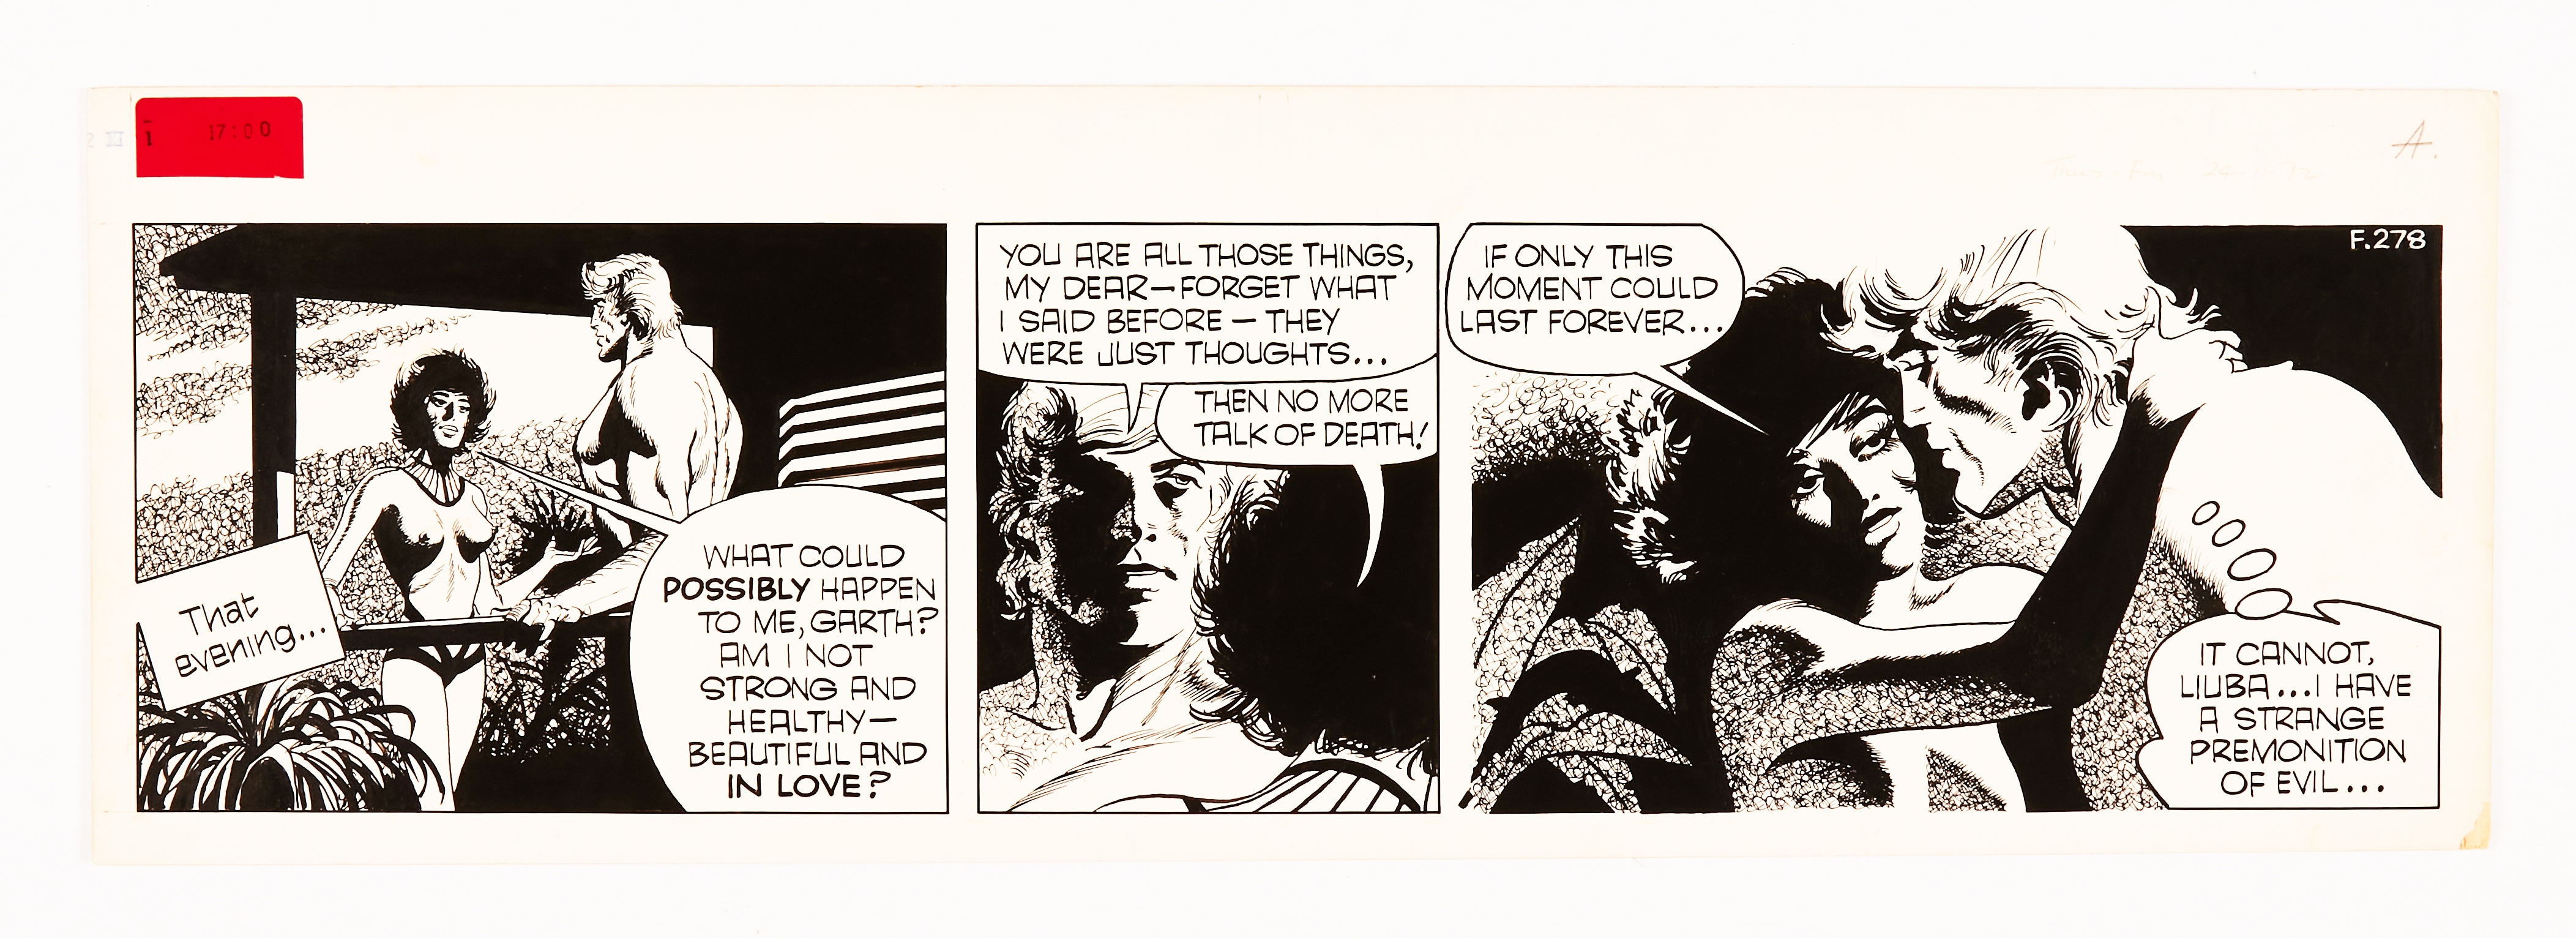 Garth: 'The People of the Abyss' original artwork (1972) by Frank Bellamy for the Daily Mirror 24